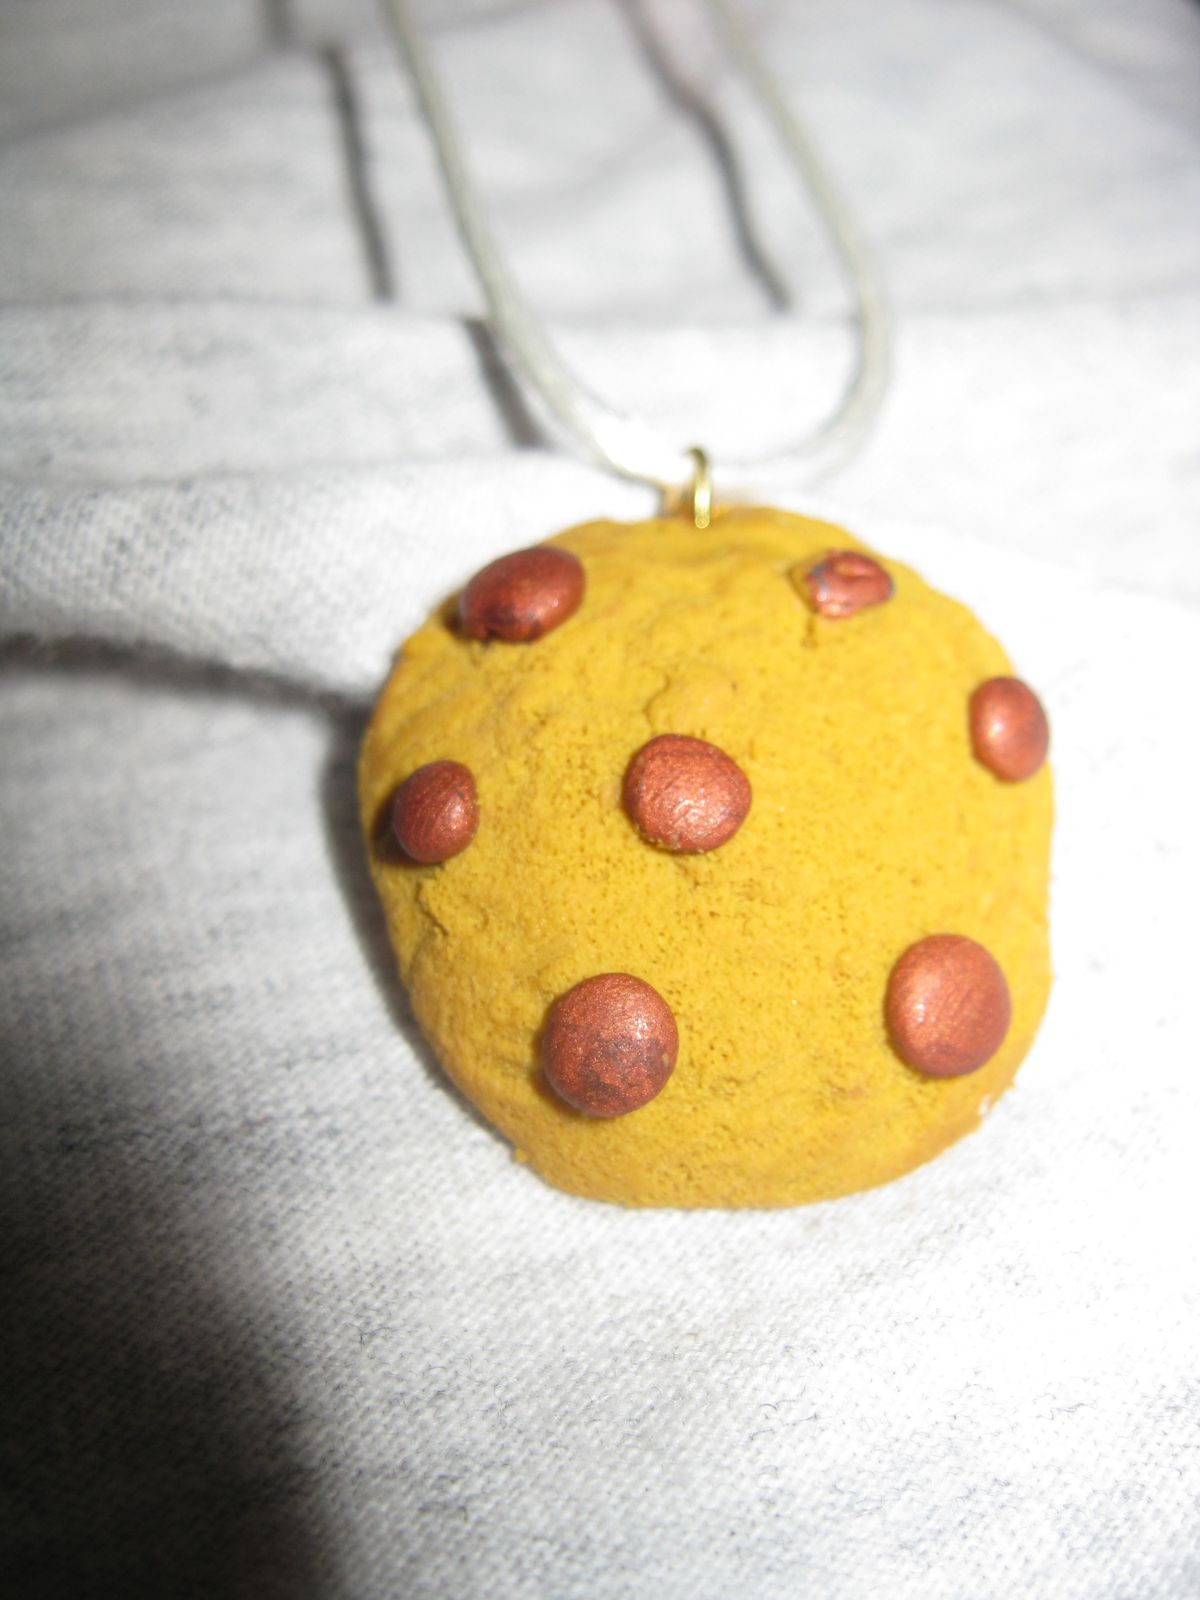 gourmandises-fimo 5249-copie-1